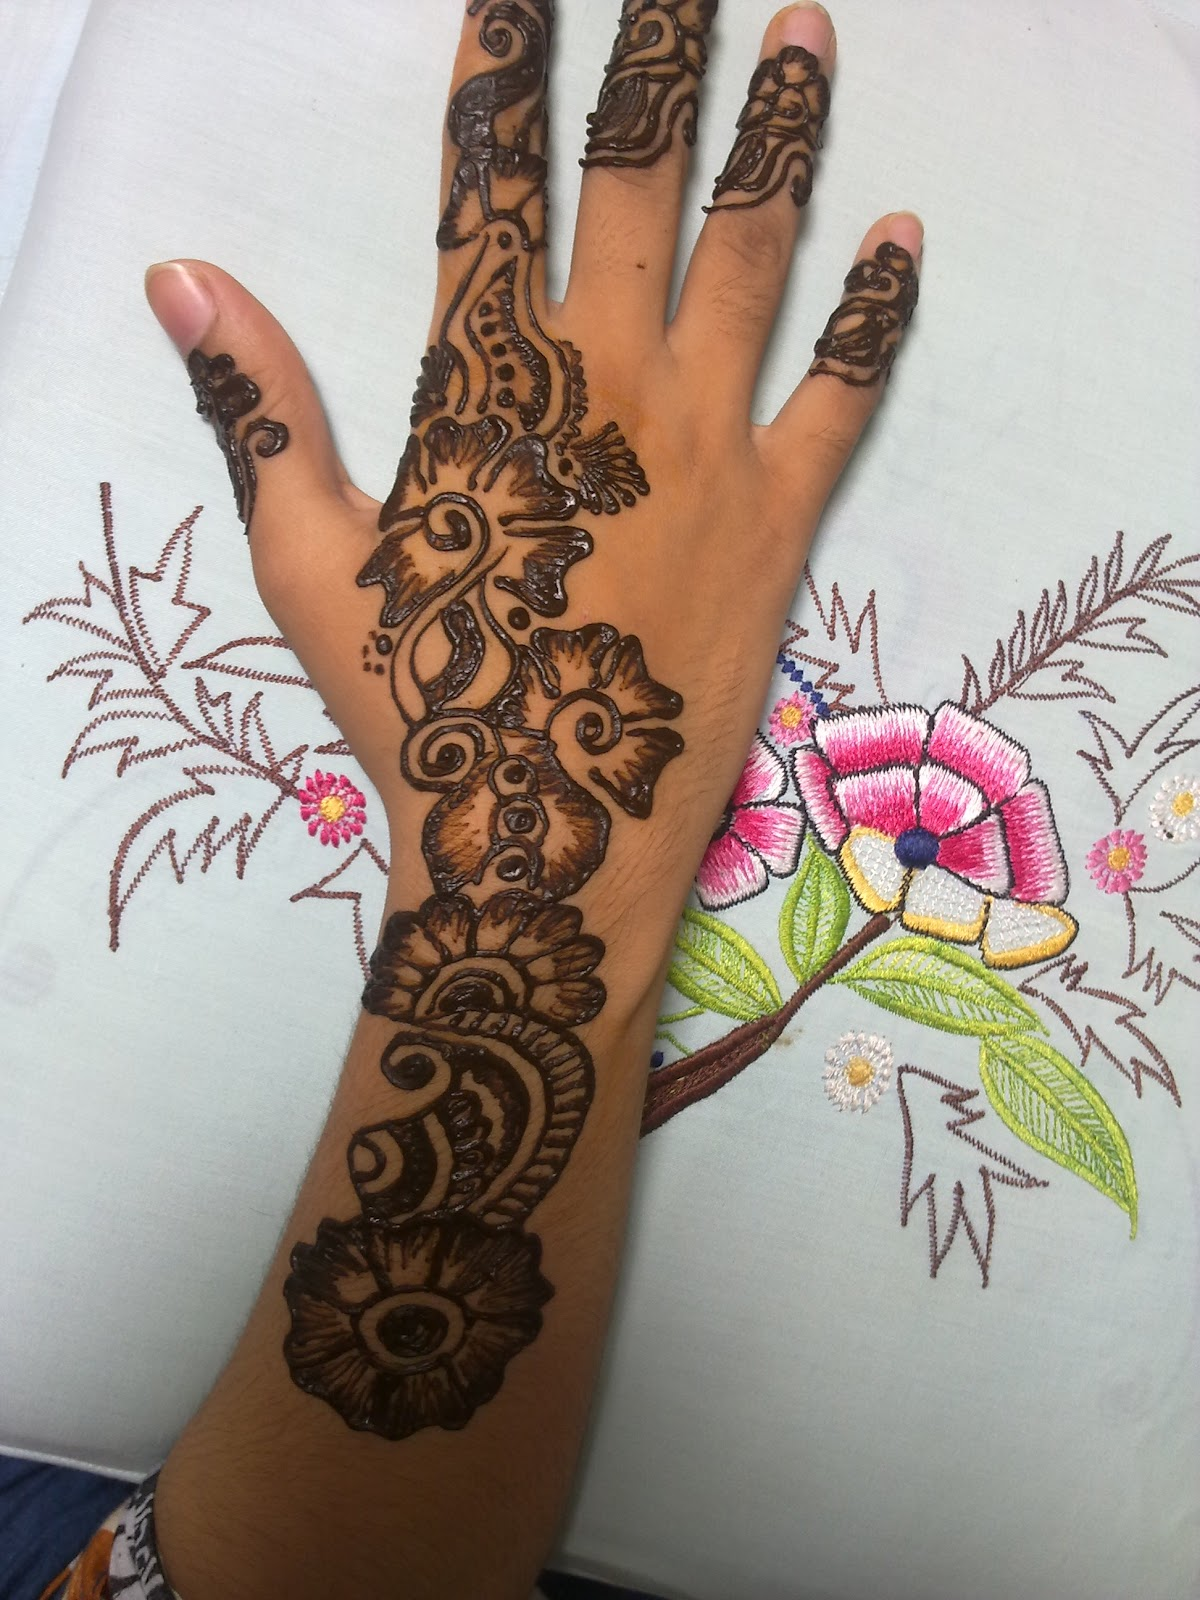 Best Henna Designs: Mehndi Designs For Hands : Best Mehndi Designs For Hands 2013